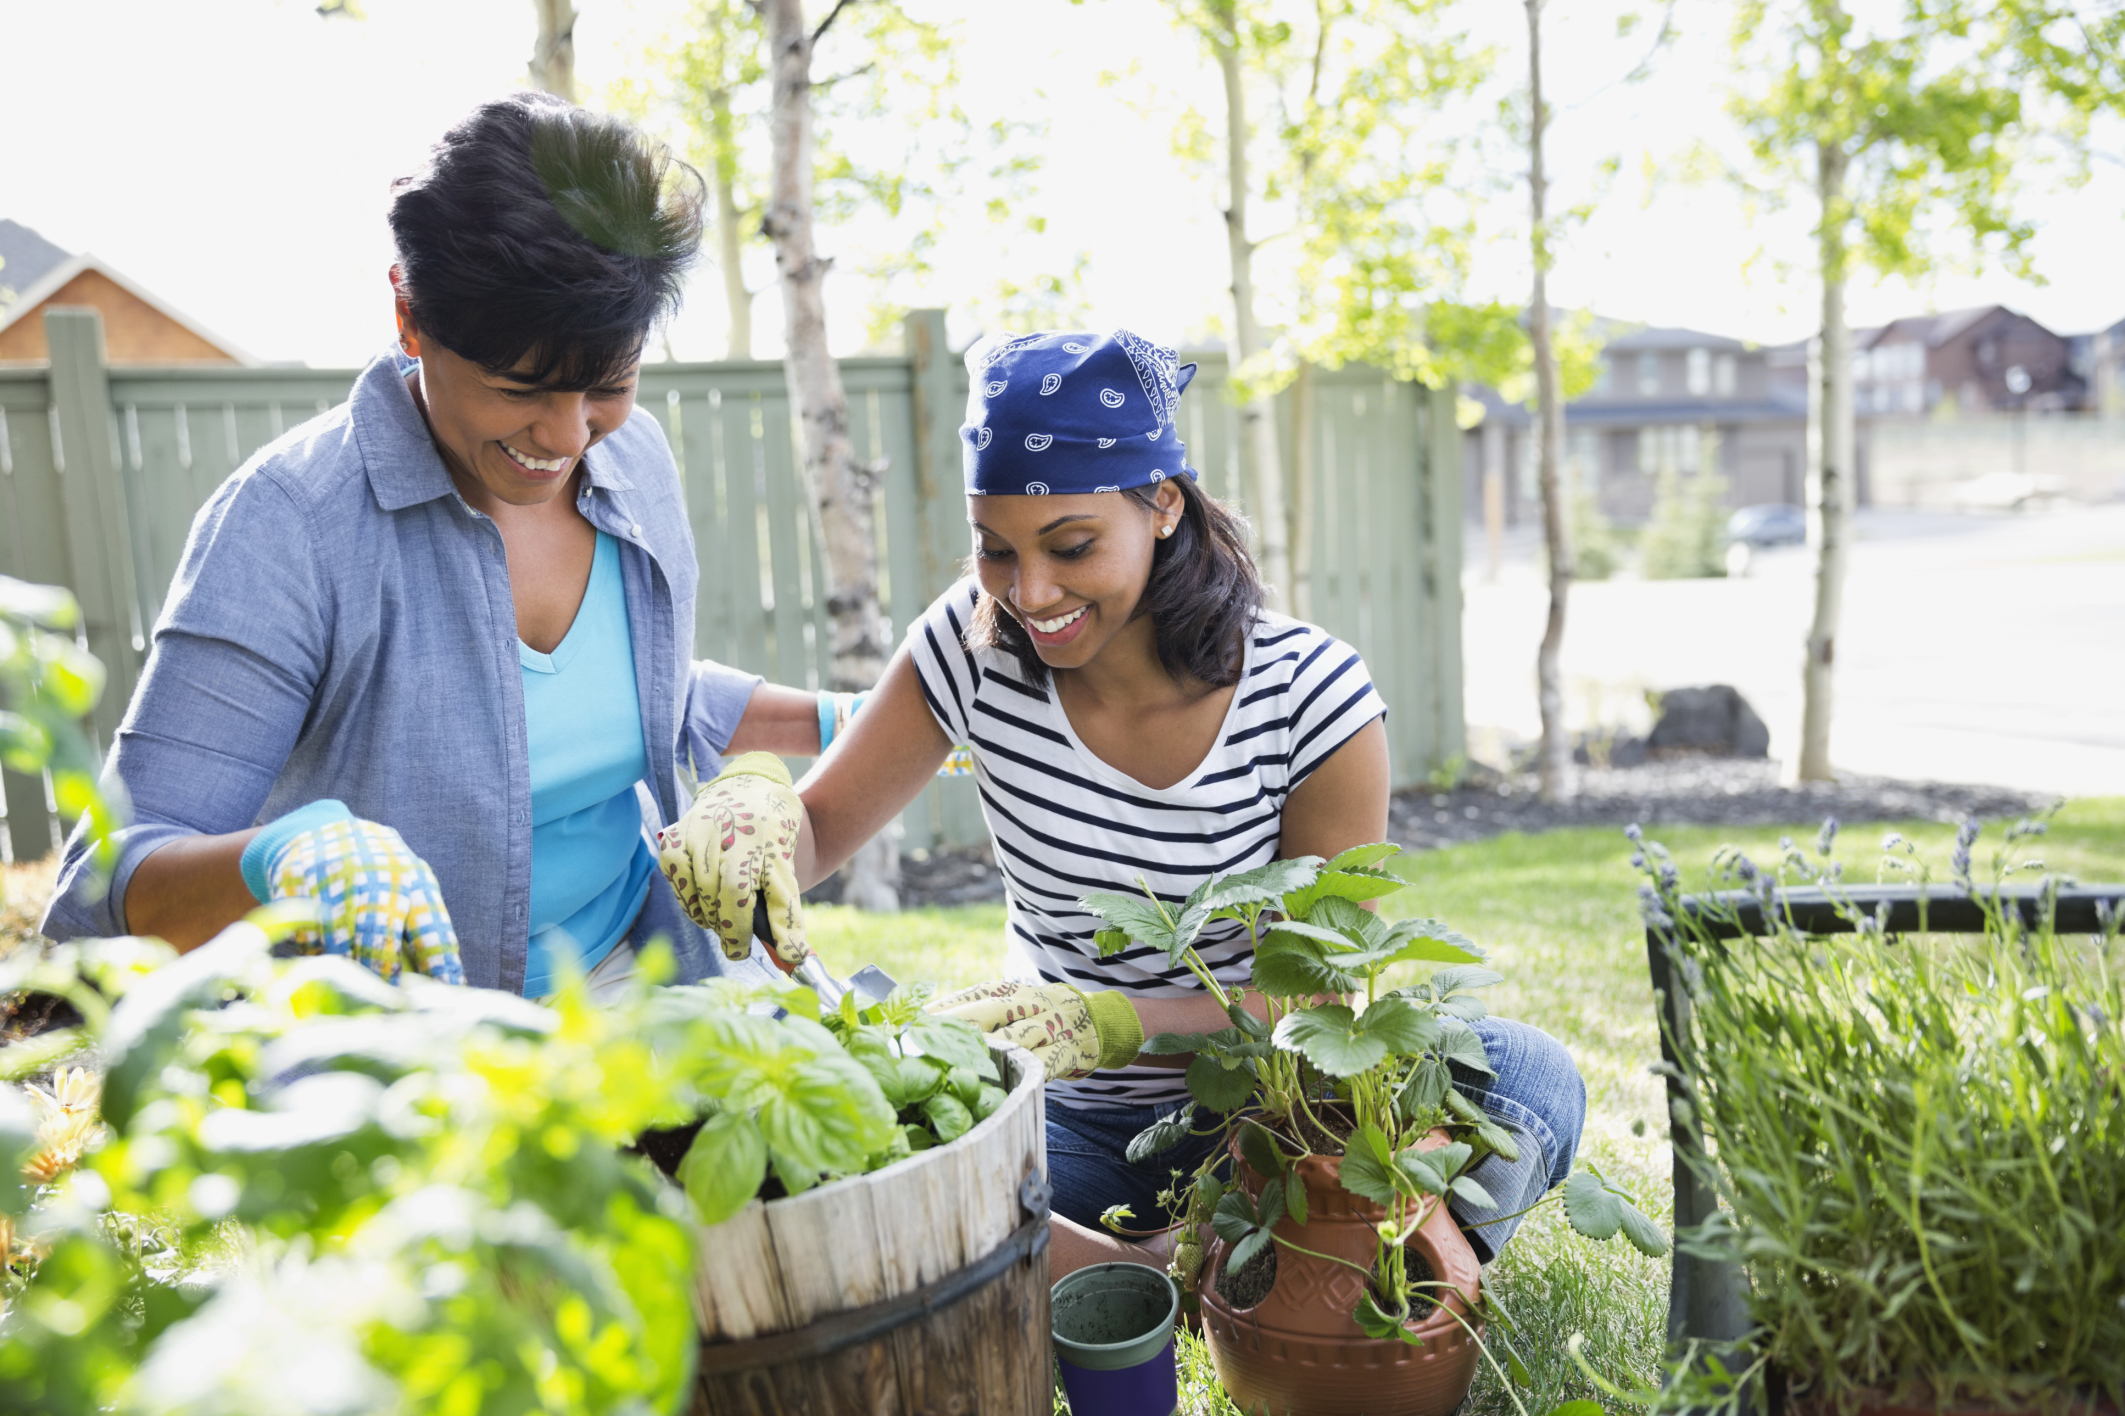 Mother and adult daughter gardening together